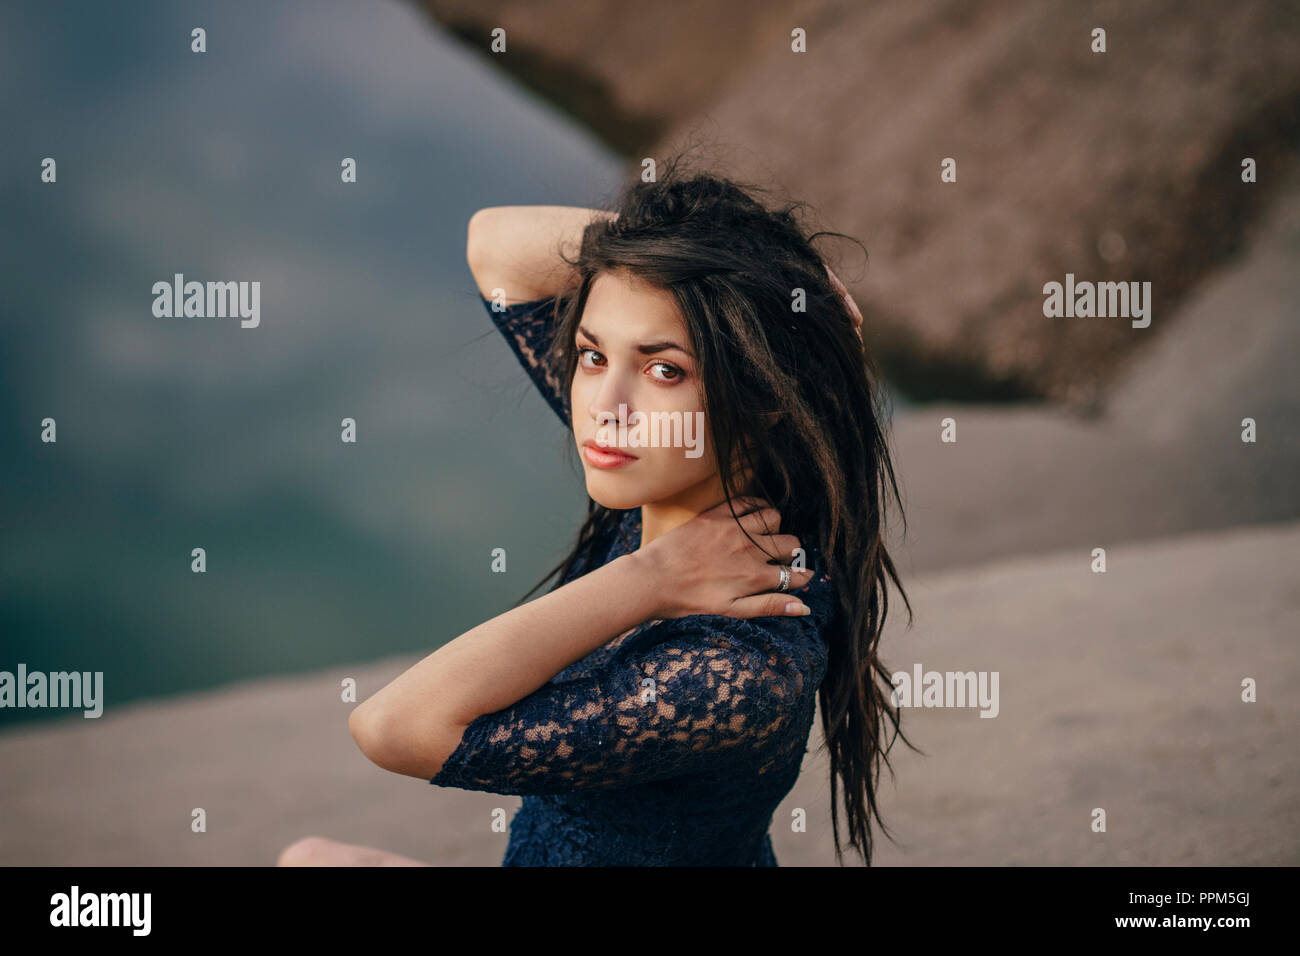 Lifestyle portrait of a woman brunettes in background of lake sitting in sand on a cloudy day. Romantic, gentle, mystical, pensive image of a girl. Gi - Stock Image